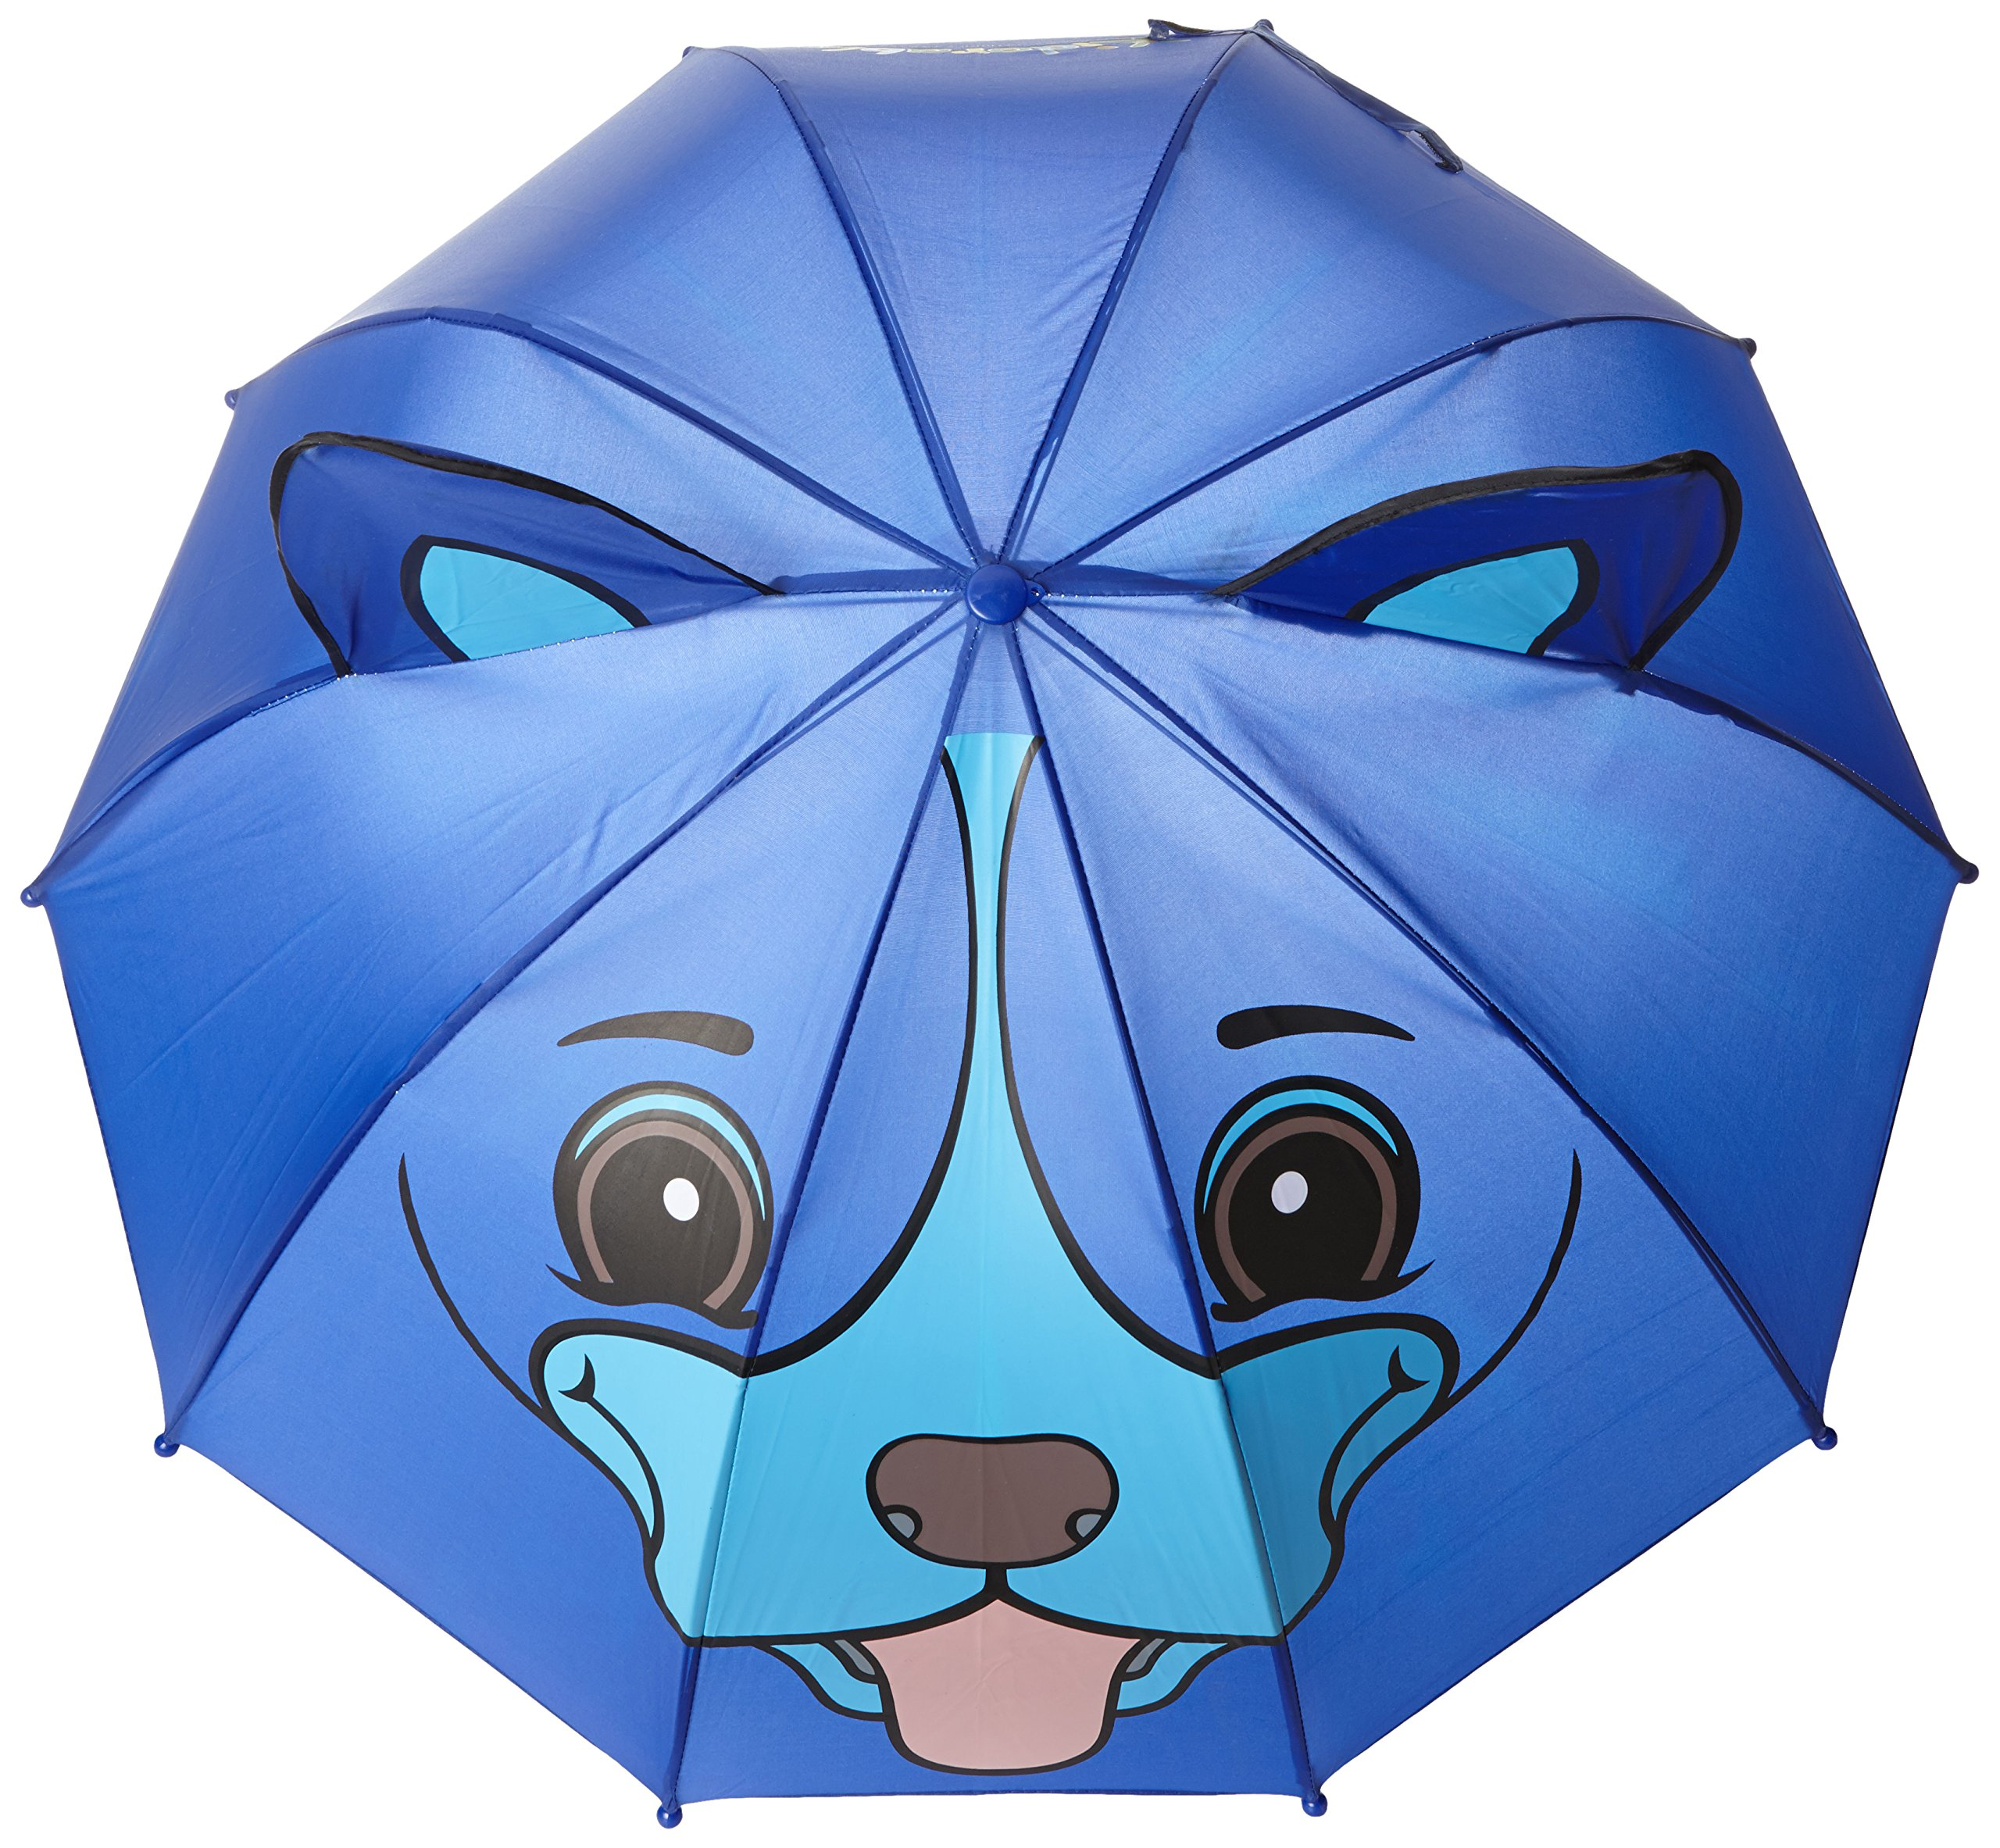 Kidorable Blue Dog Umbrella With Fun Pop-Out Ears, One Size by Kidorable (Image #2)